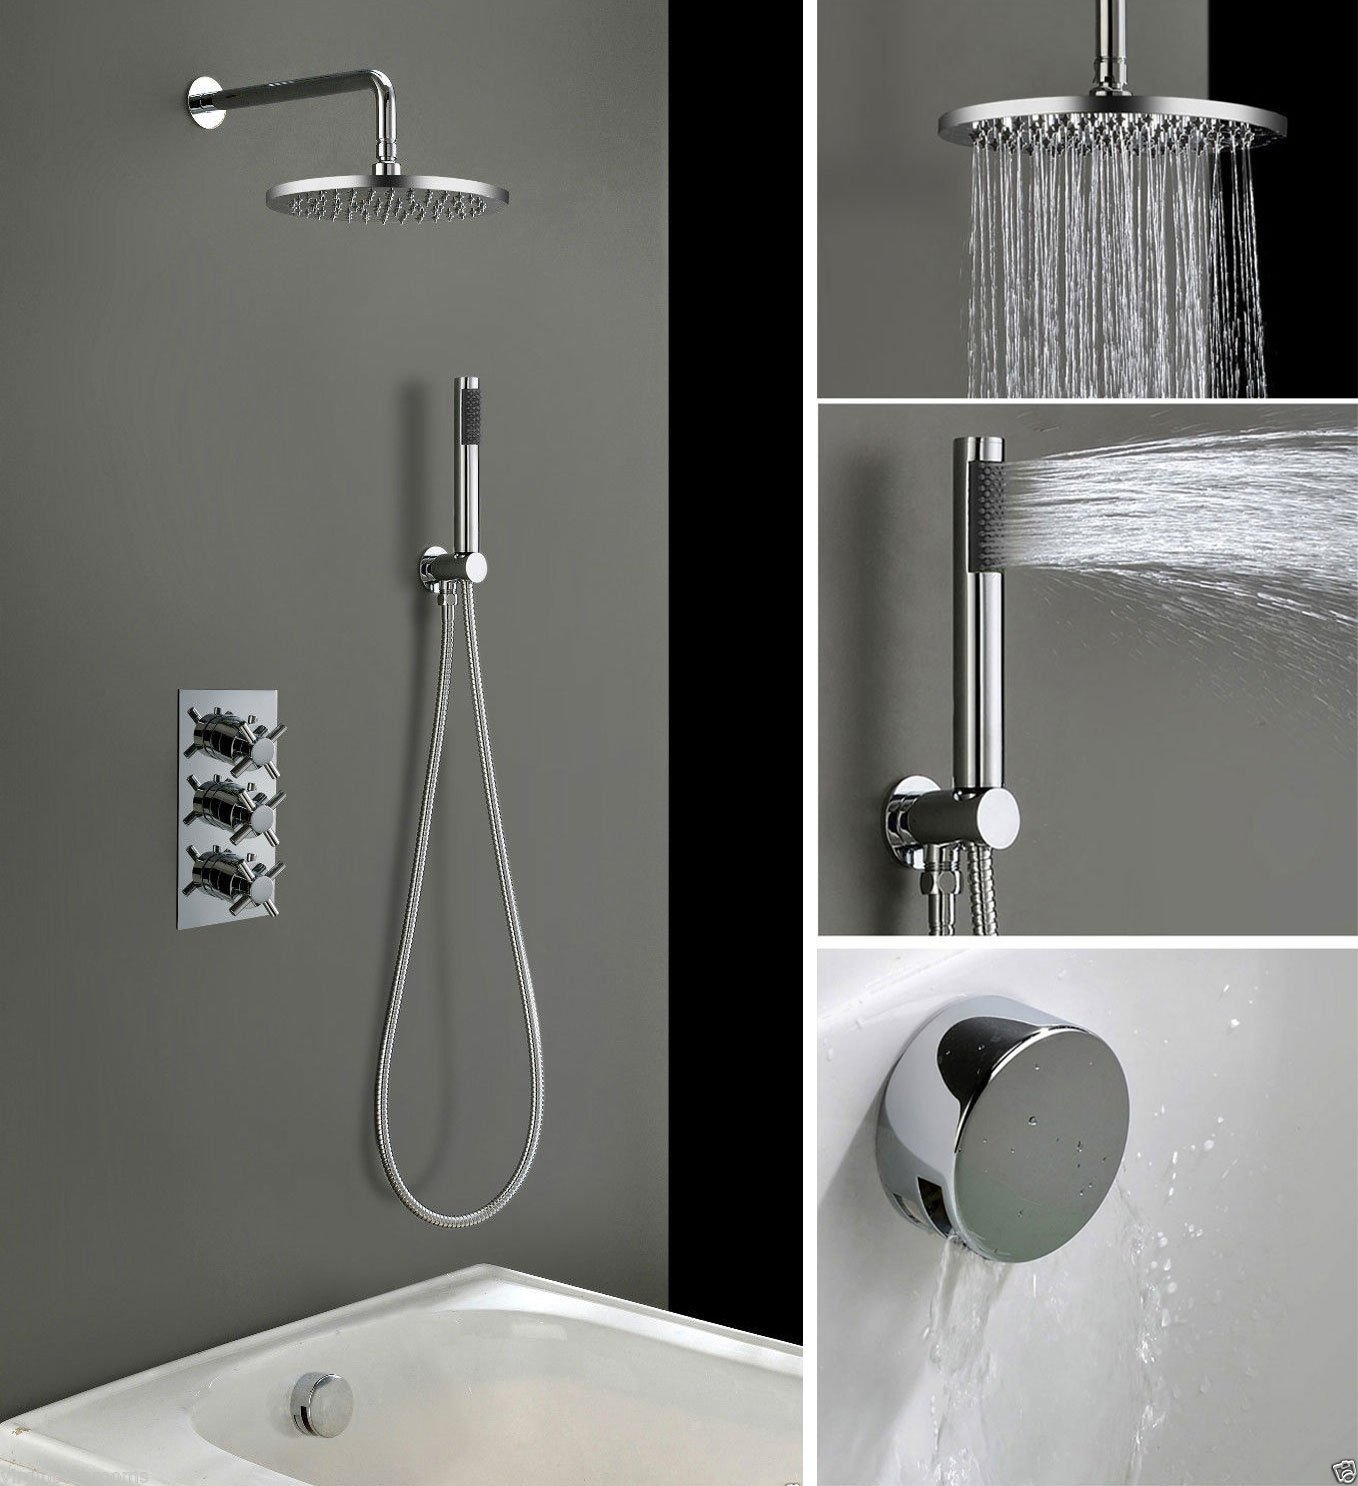 3 DIAL 3 WAY CROSS CONCEALED THERMOSTATIC MIXER VALVE HAND HELD BATH ...